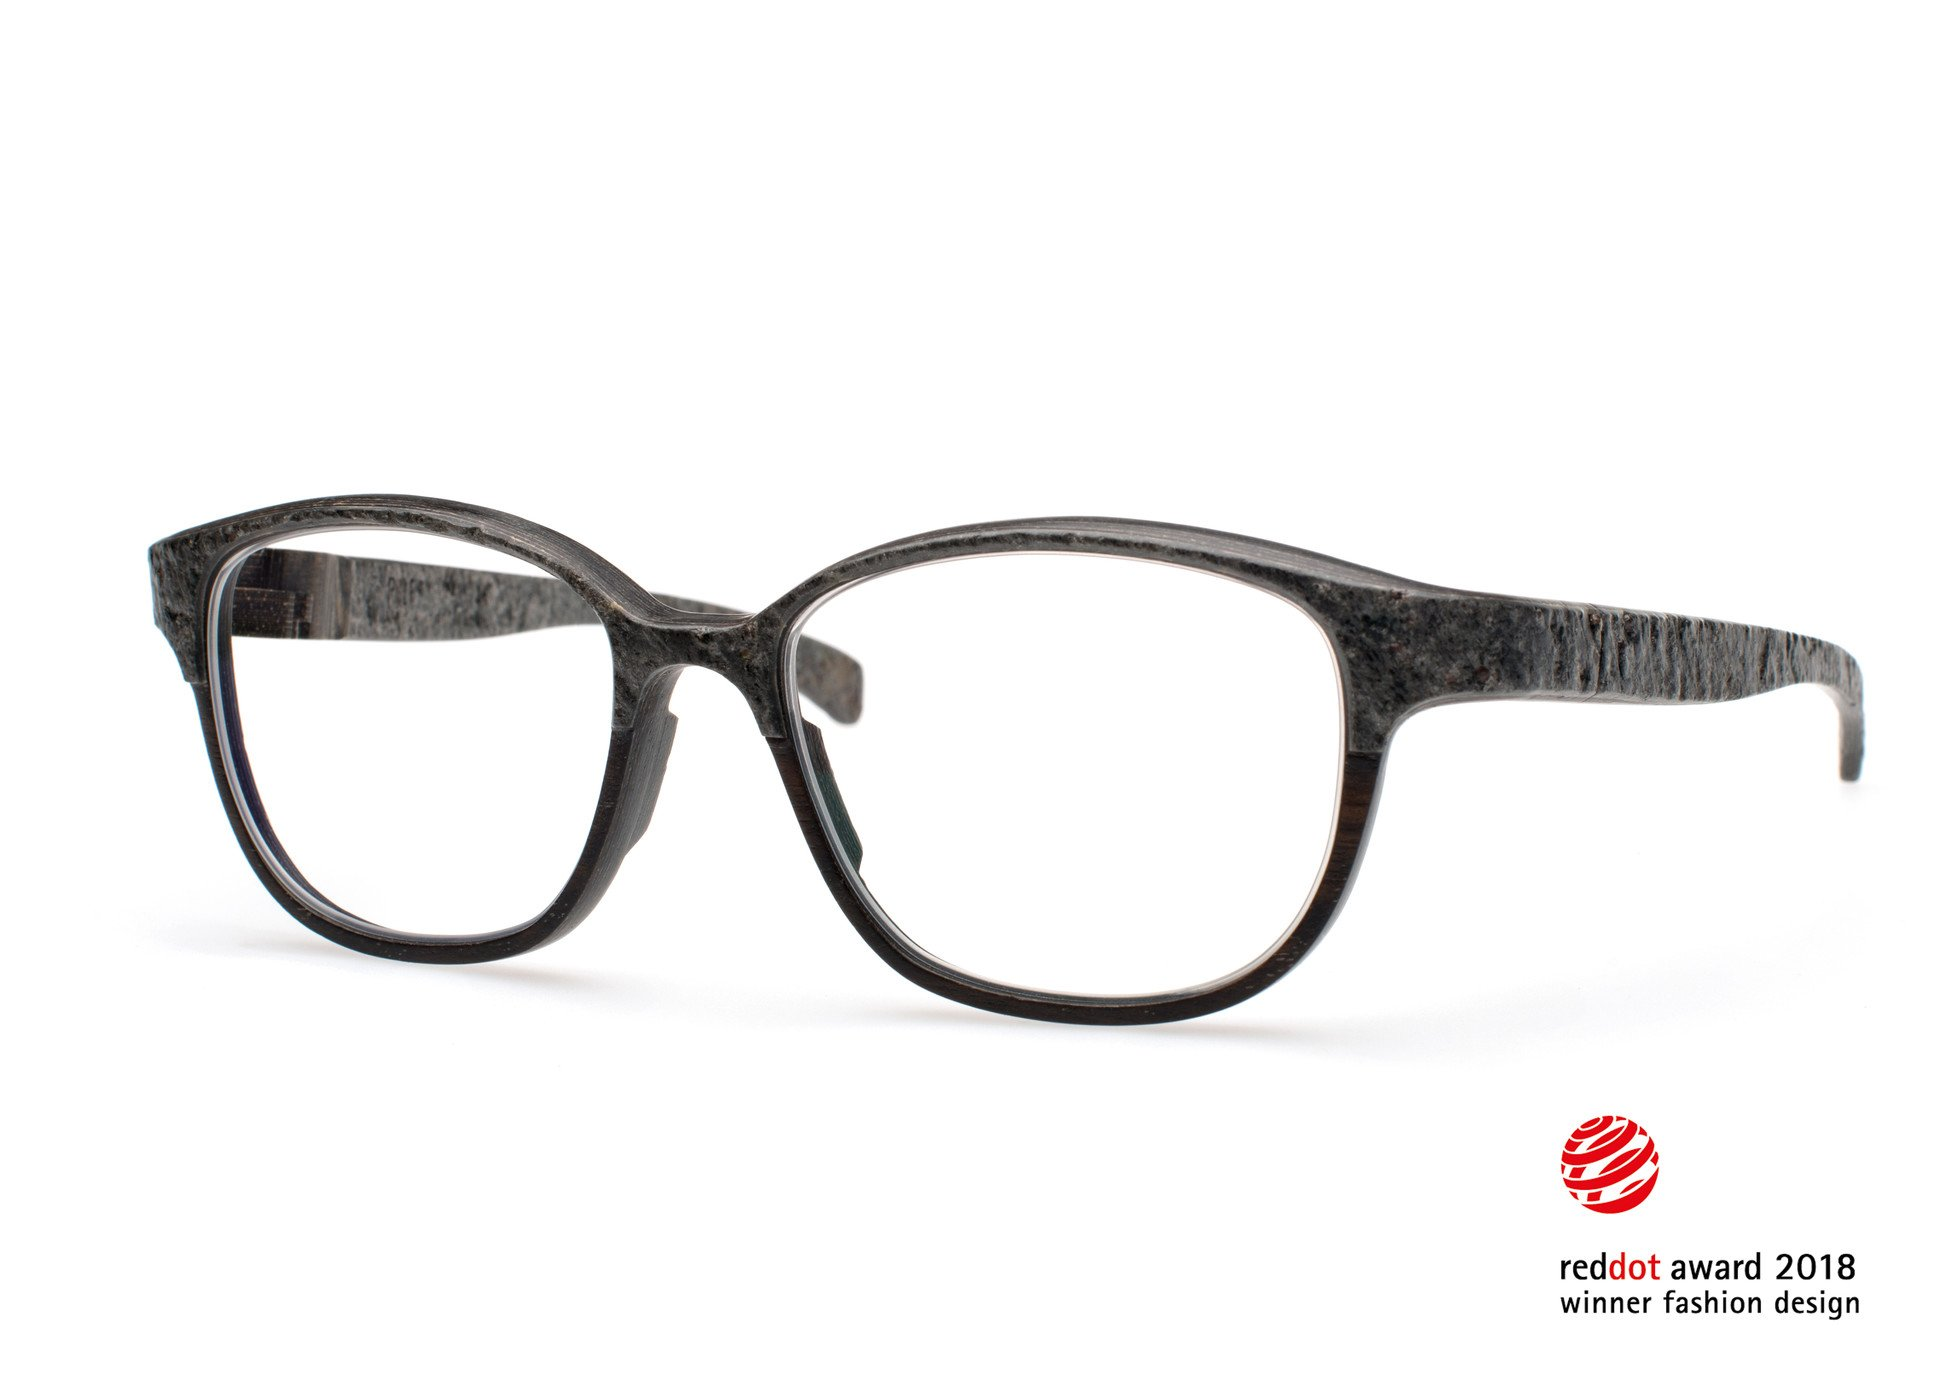 fa1e1cfabc9 Award for high design quality  ROLF SPECTACLES RECEIVES RED DOT